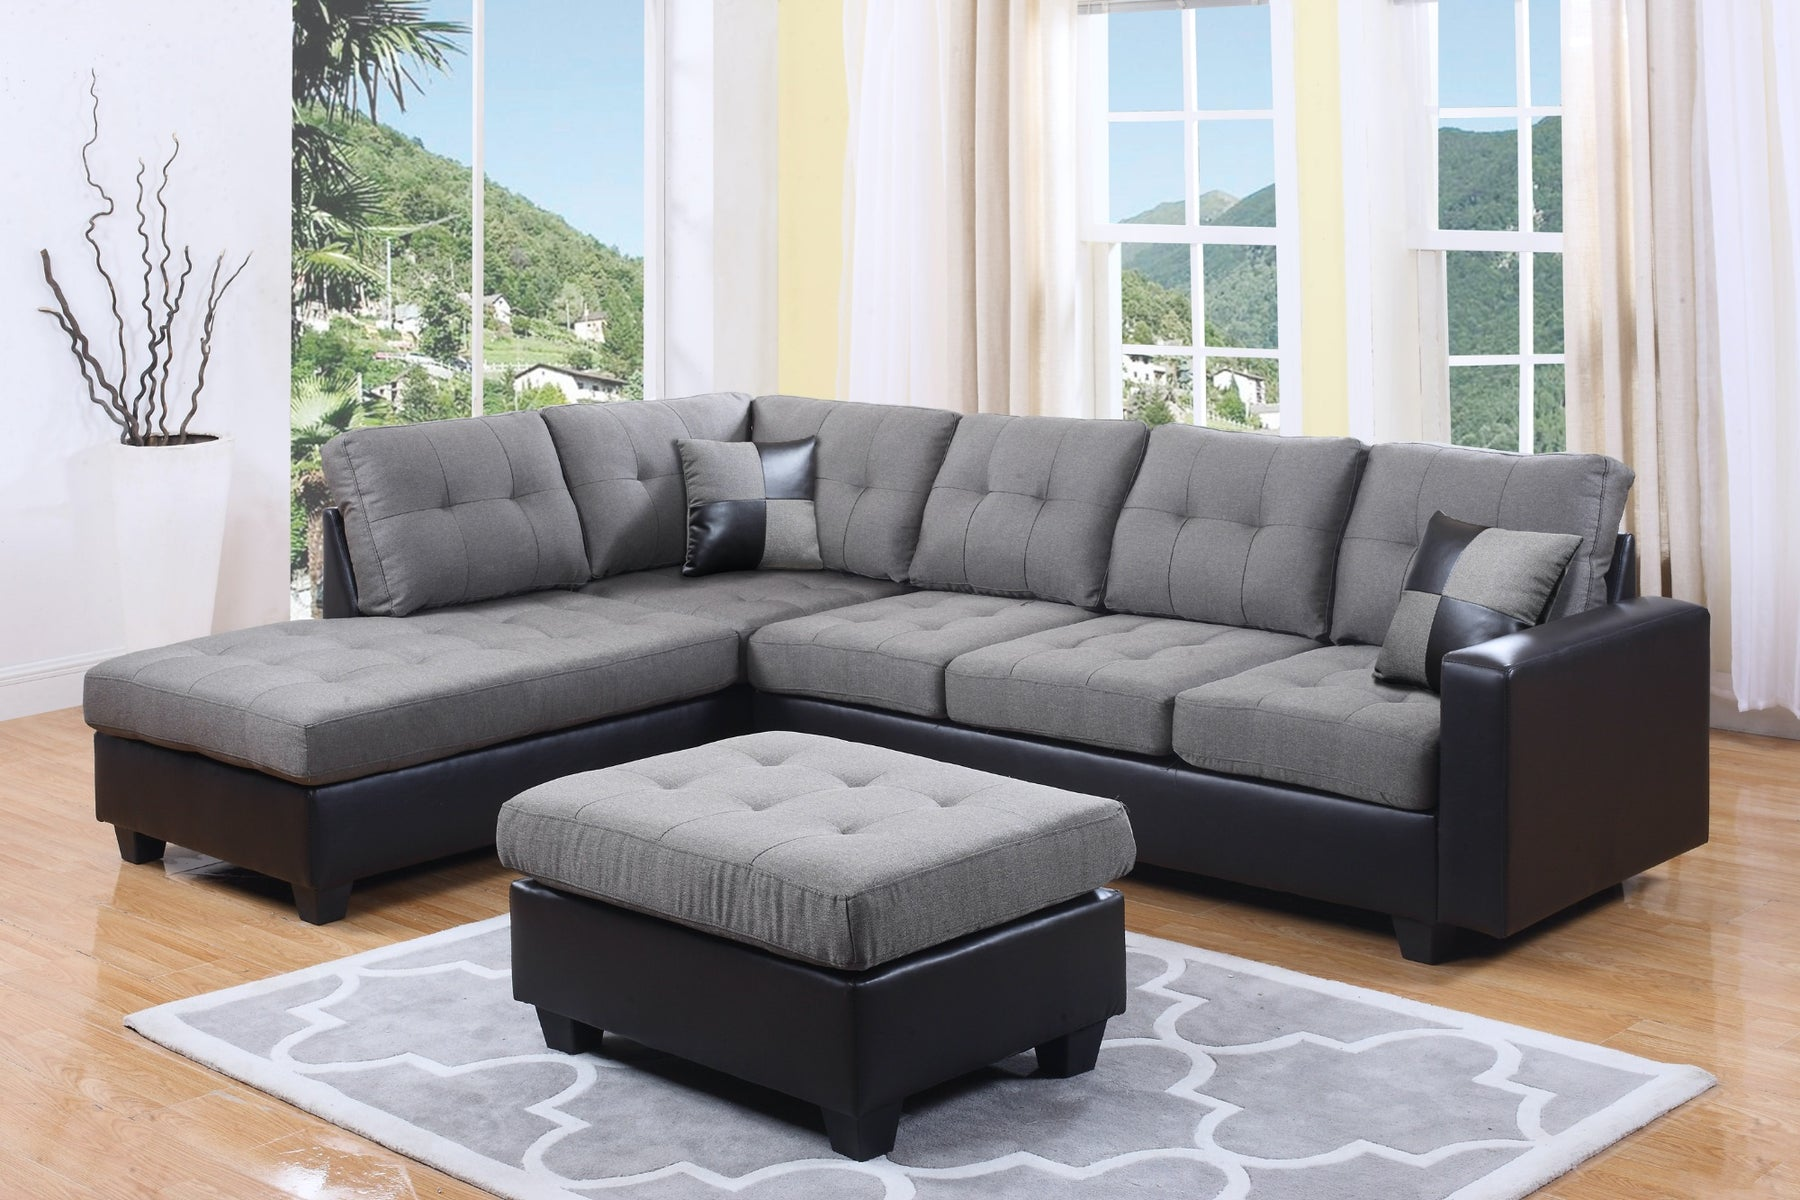 Sydney 2 Pc Sectional Sofa